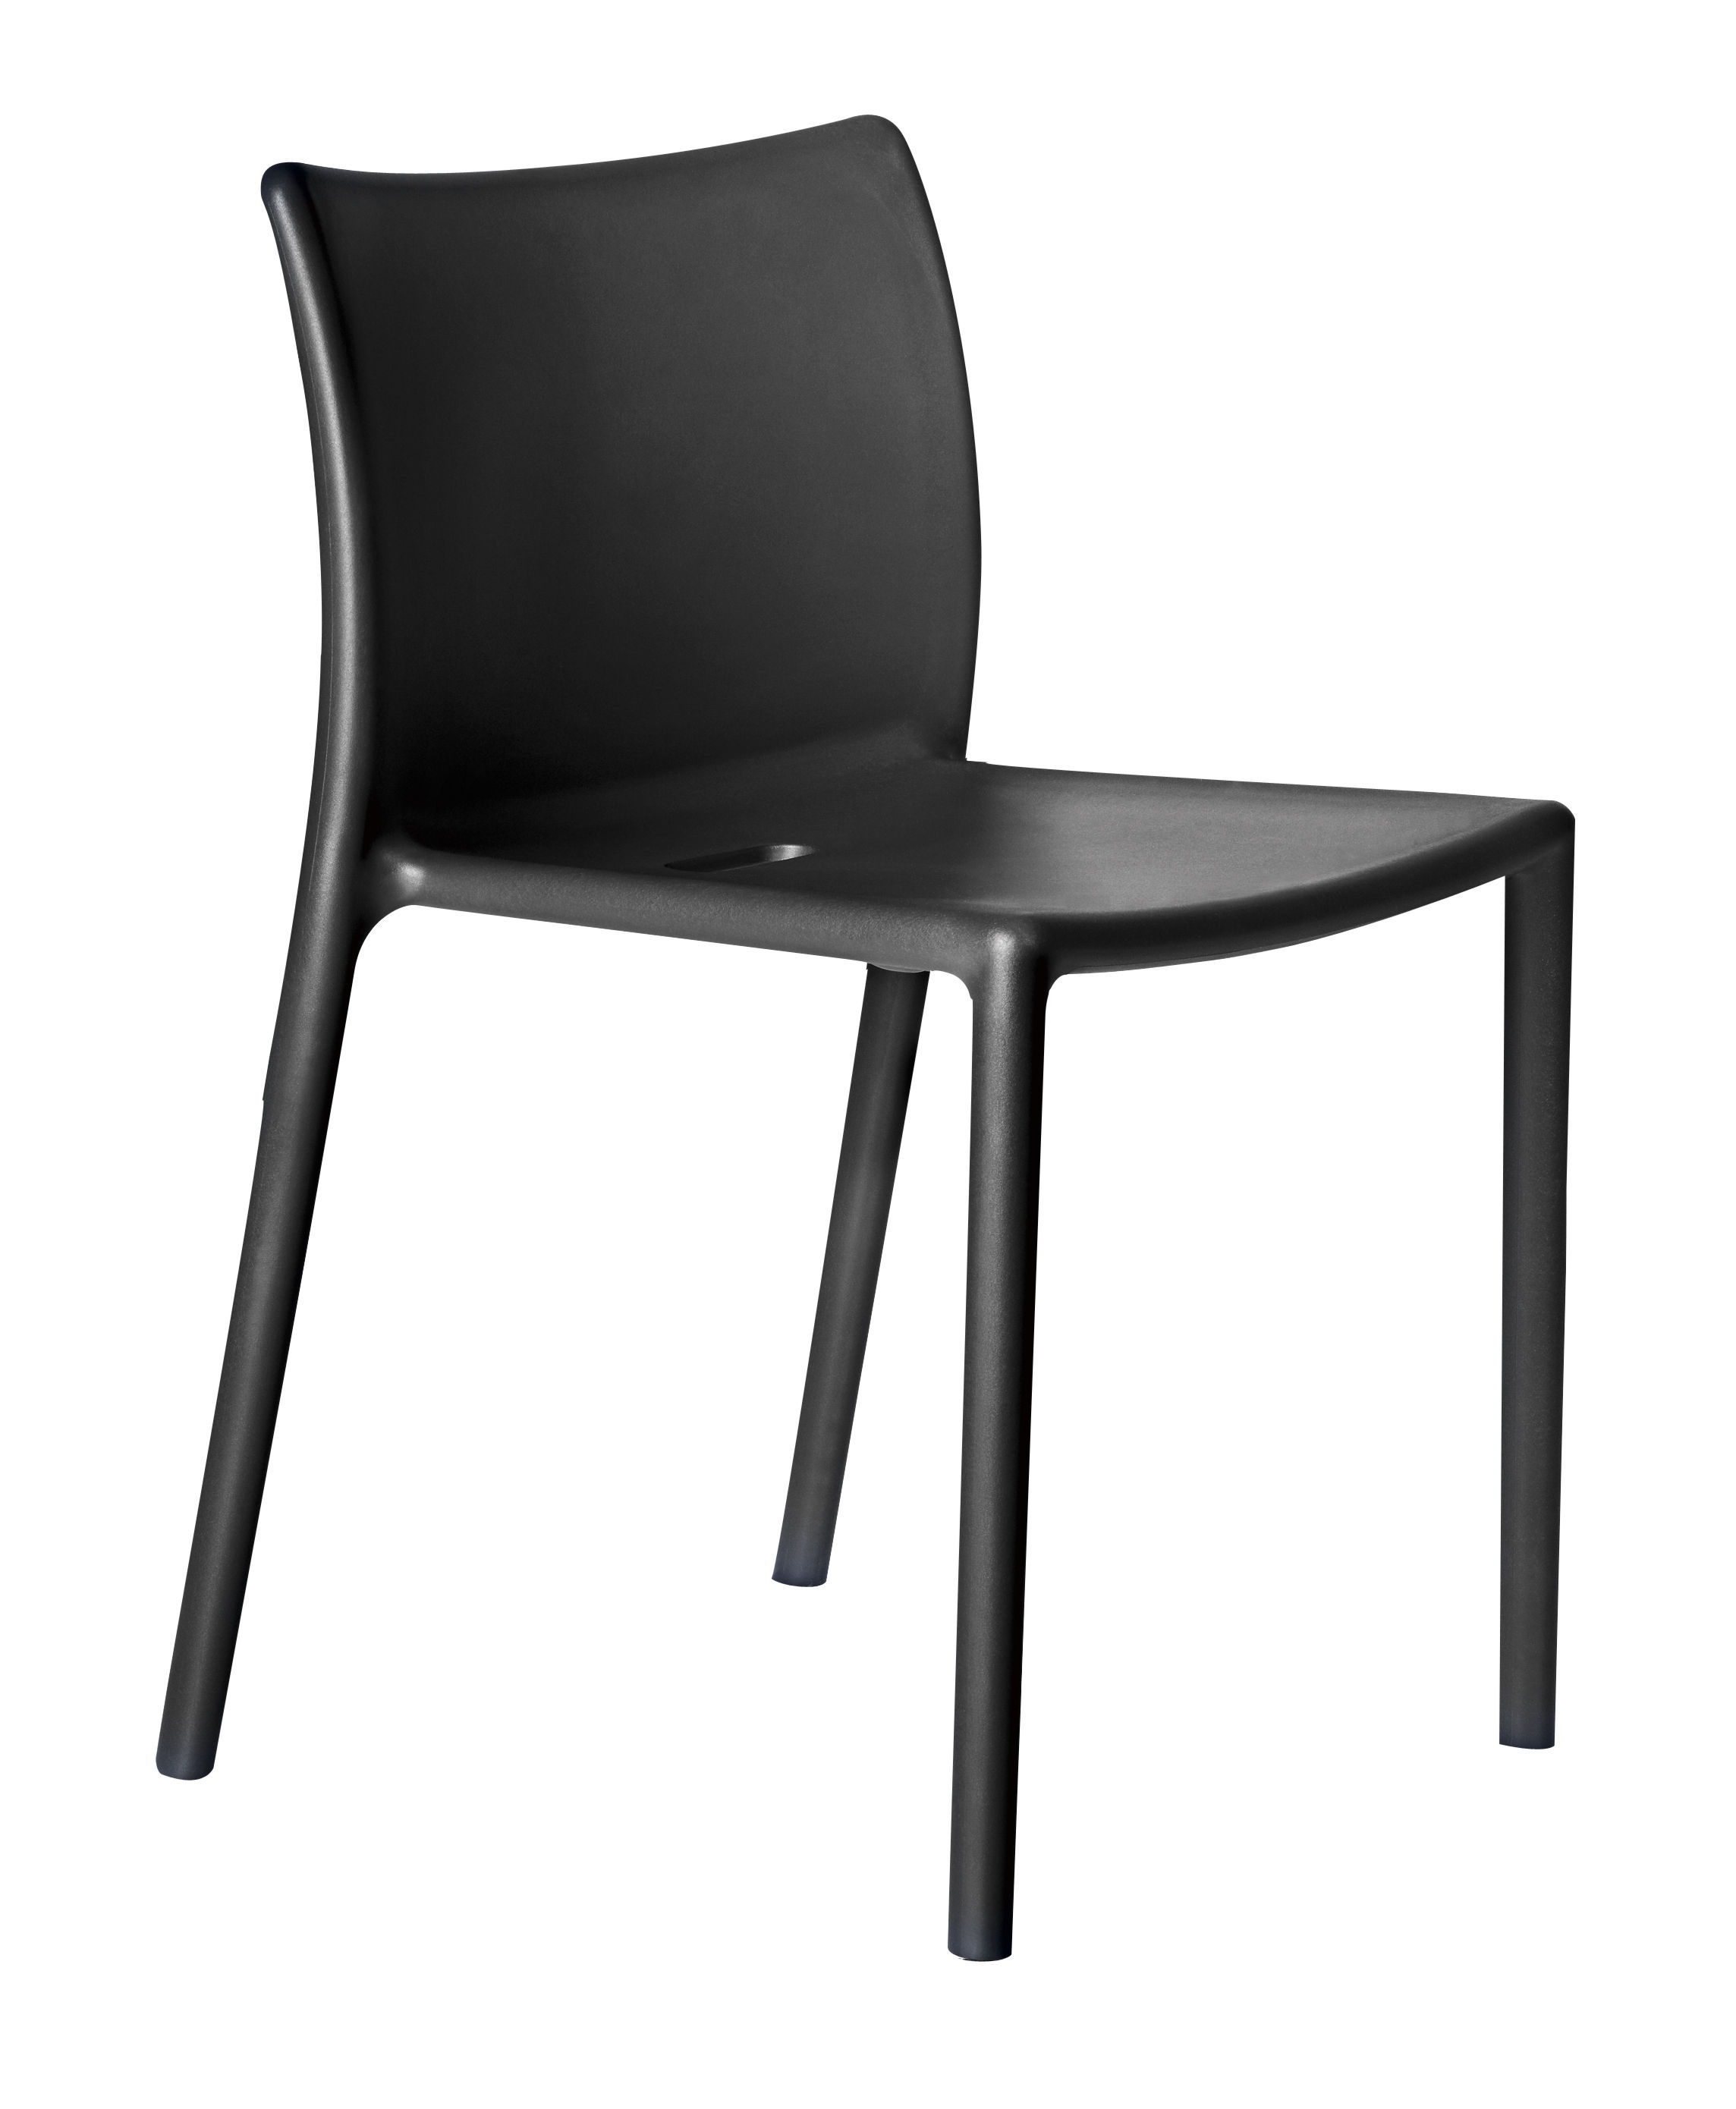 Furniture - Chairs - Air-chair Stacking chair - Polypropylene by Magis - Black - Polypropylene